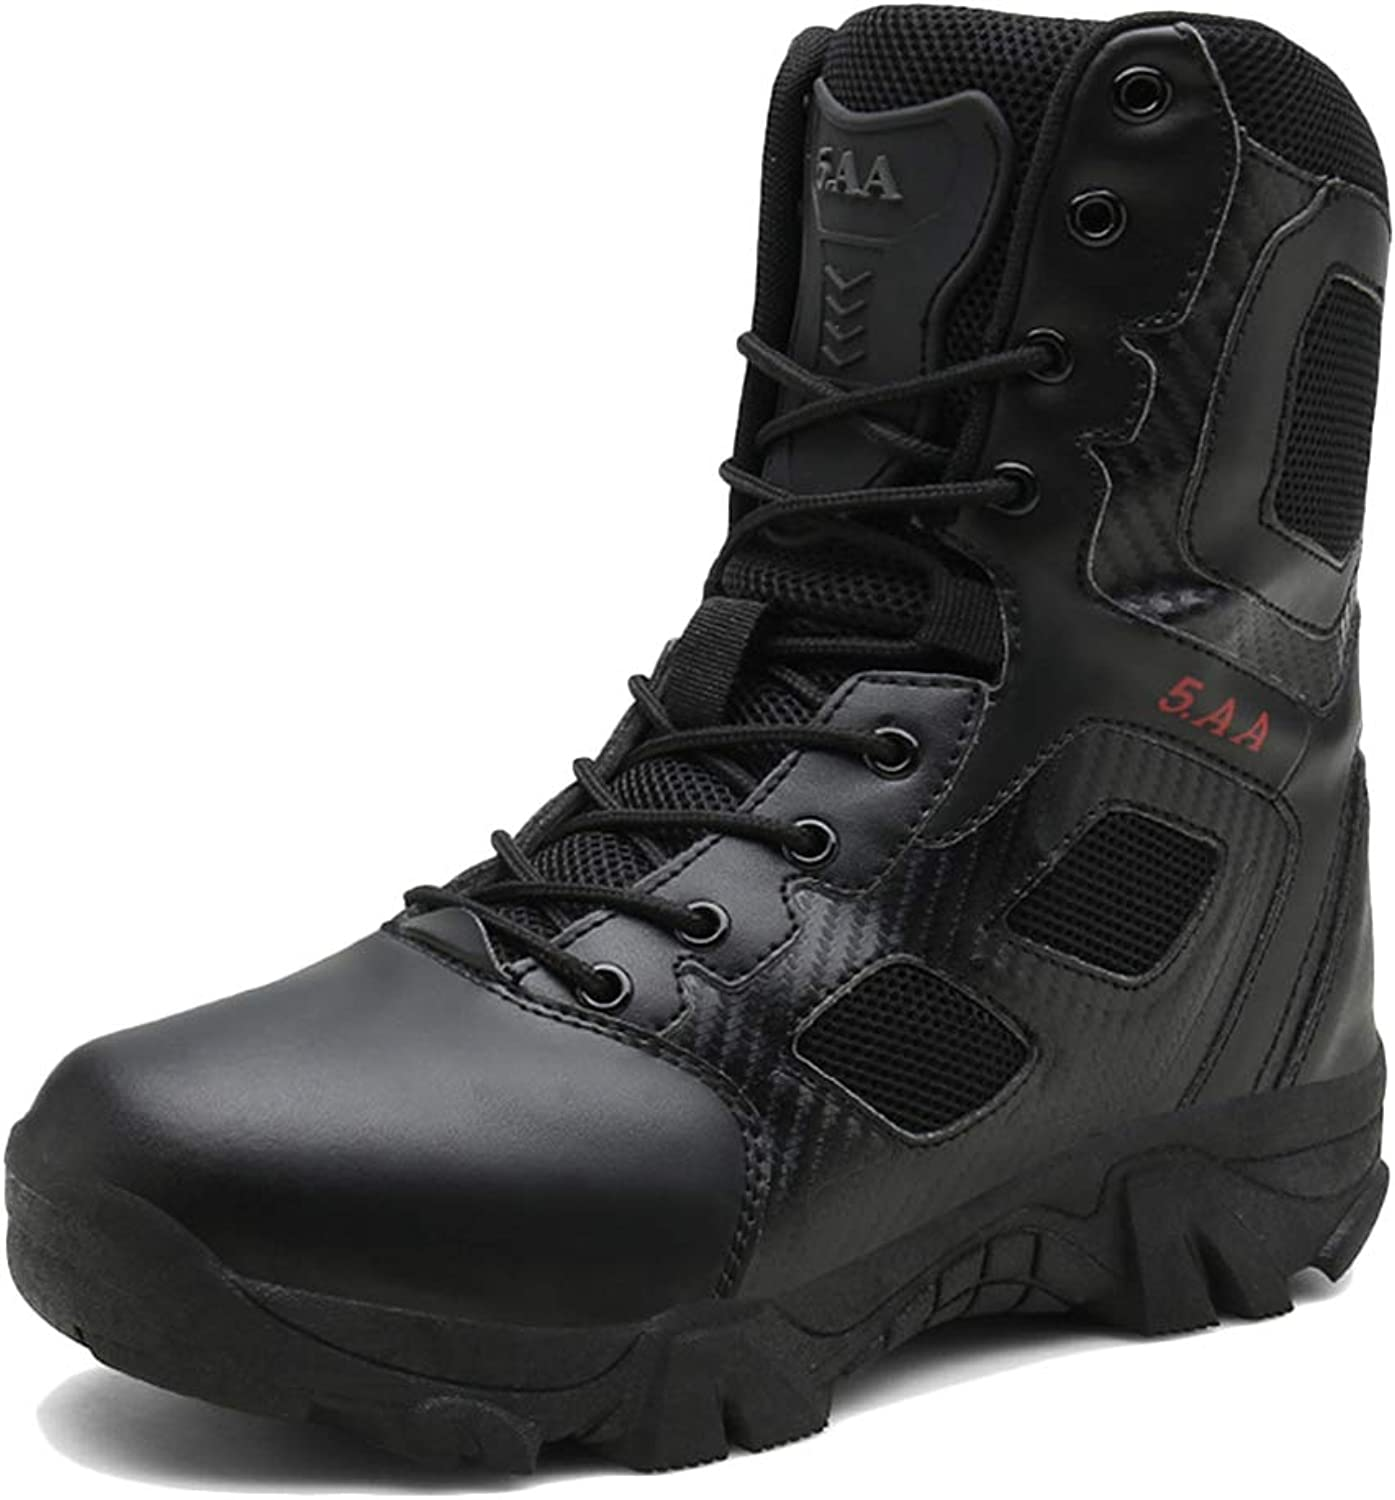 LIUYL men's military hiking boots Desert Combat Special Forces Boot Side Zip tactical boots Trekking Sports Outdoor shoes,Black-46